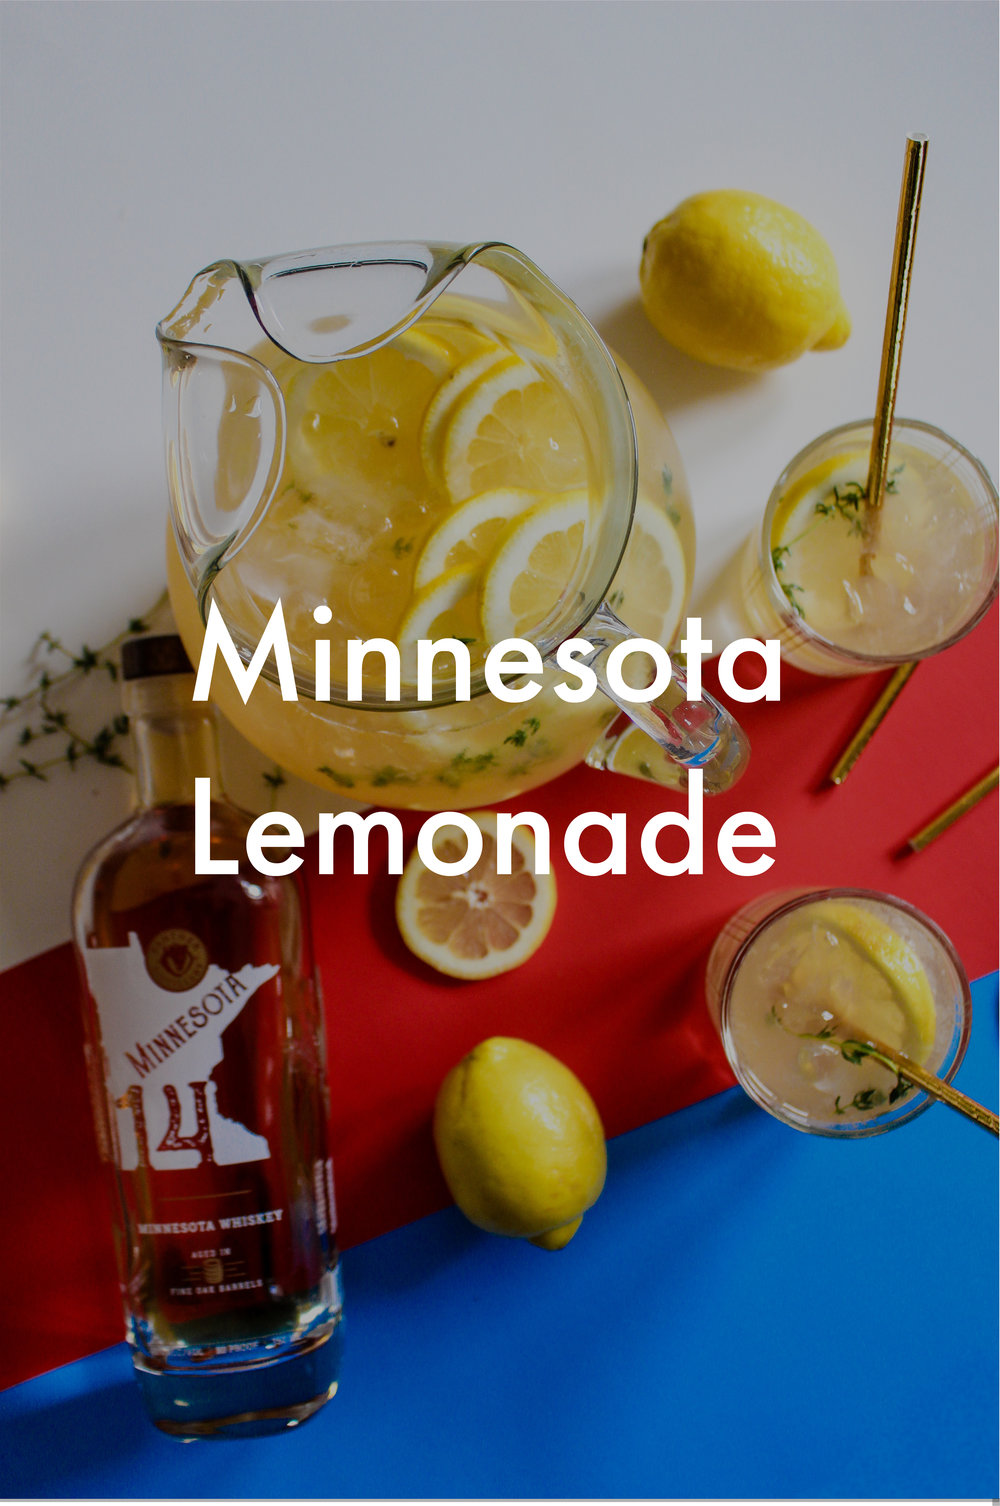 Minnesota Lemonade